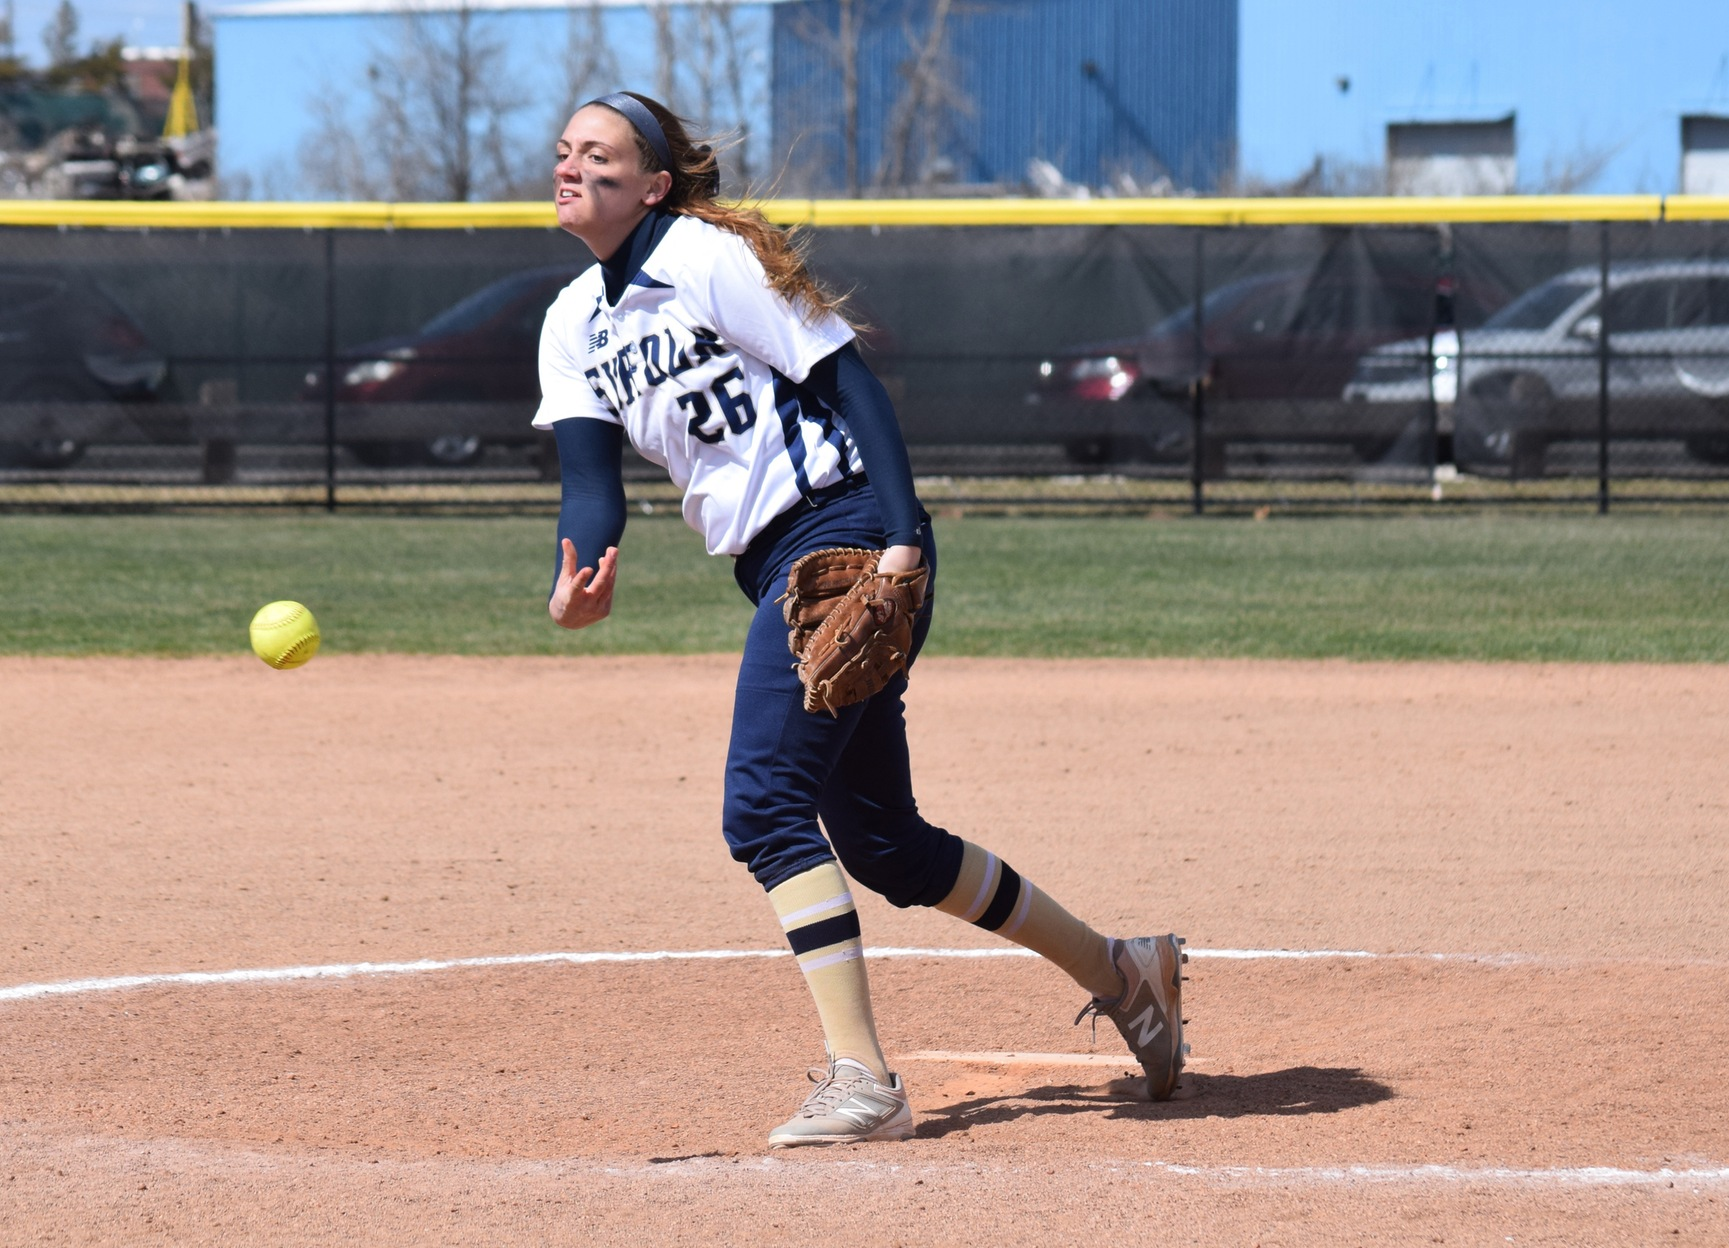 Softball Blanks St. Joseph's (Maine), 4-0, to Open Series